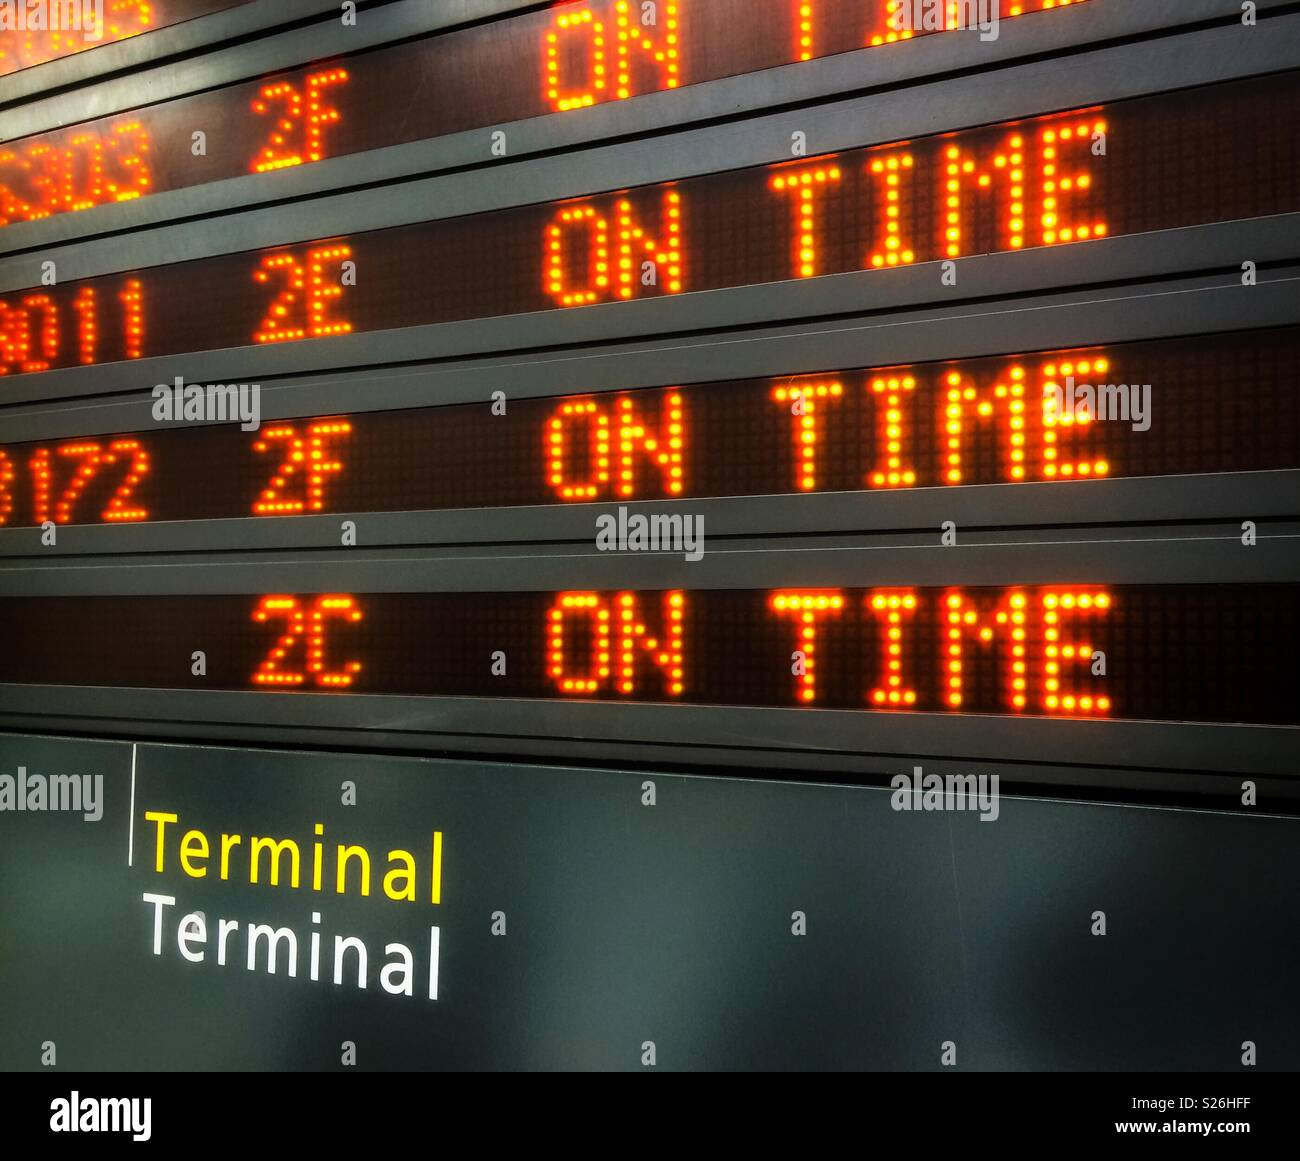 On time. Airport flight information display system showing the schedule of the flights. - Stock Image